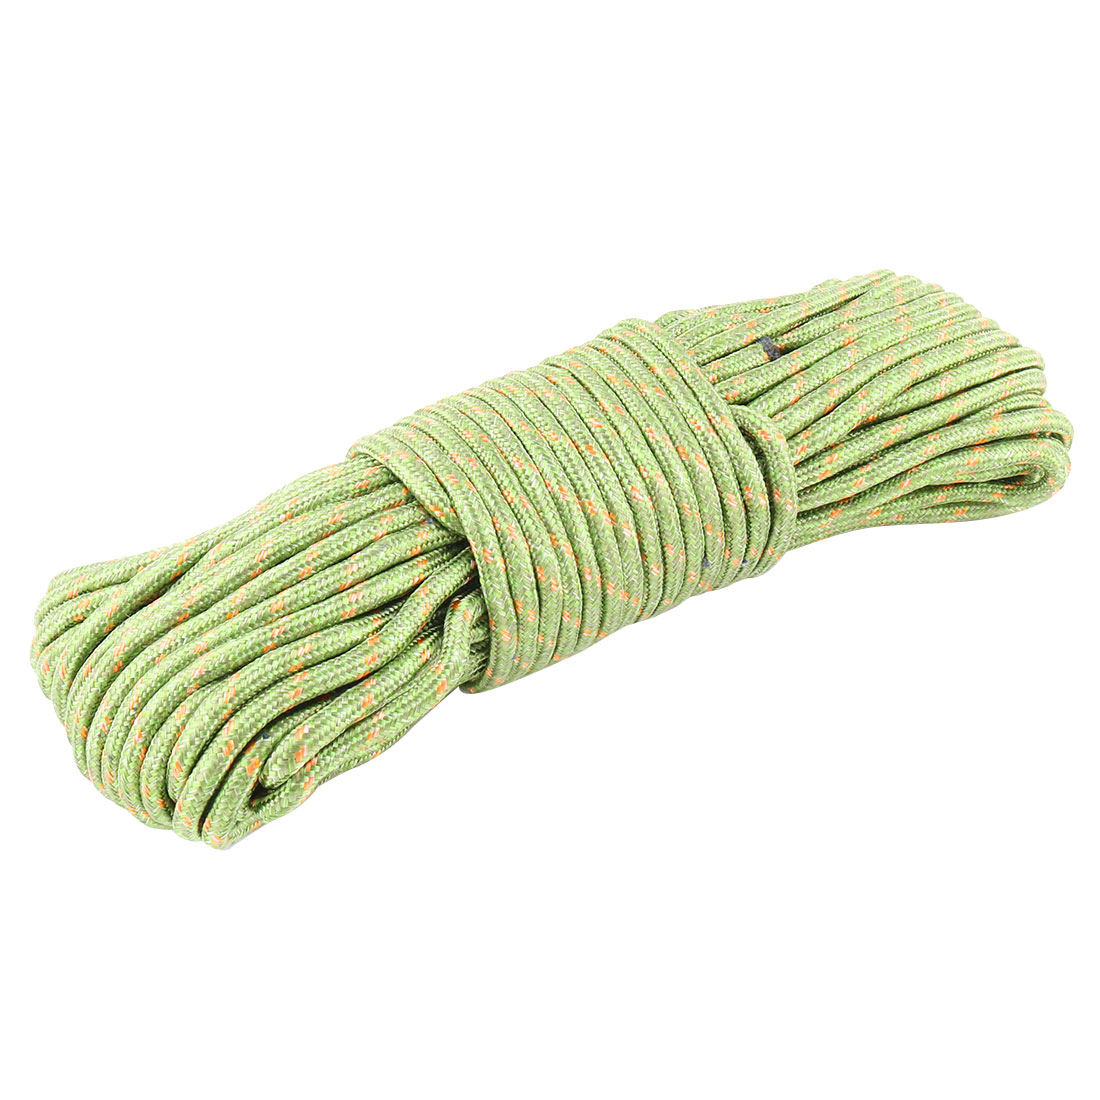 Home Yard Outdoor Nylon Hanging Windproof Clothes Rope String Line Clothesline Green 28m Long